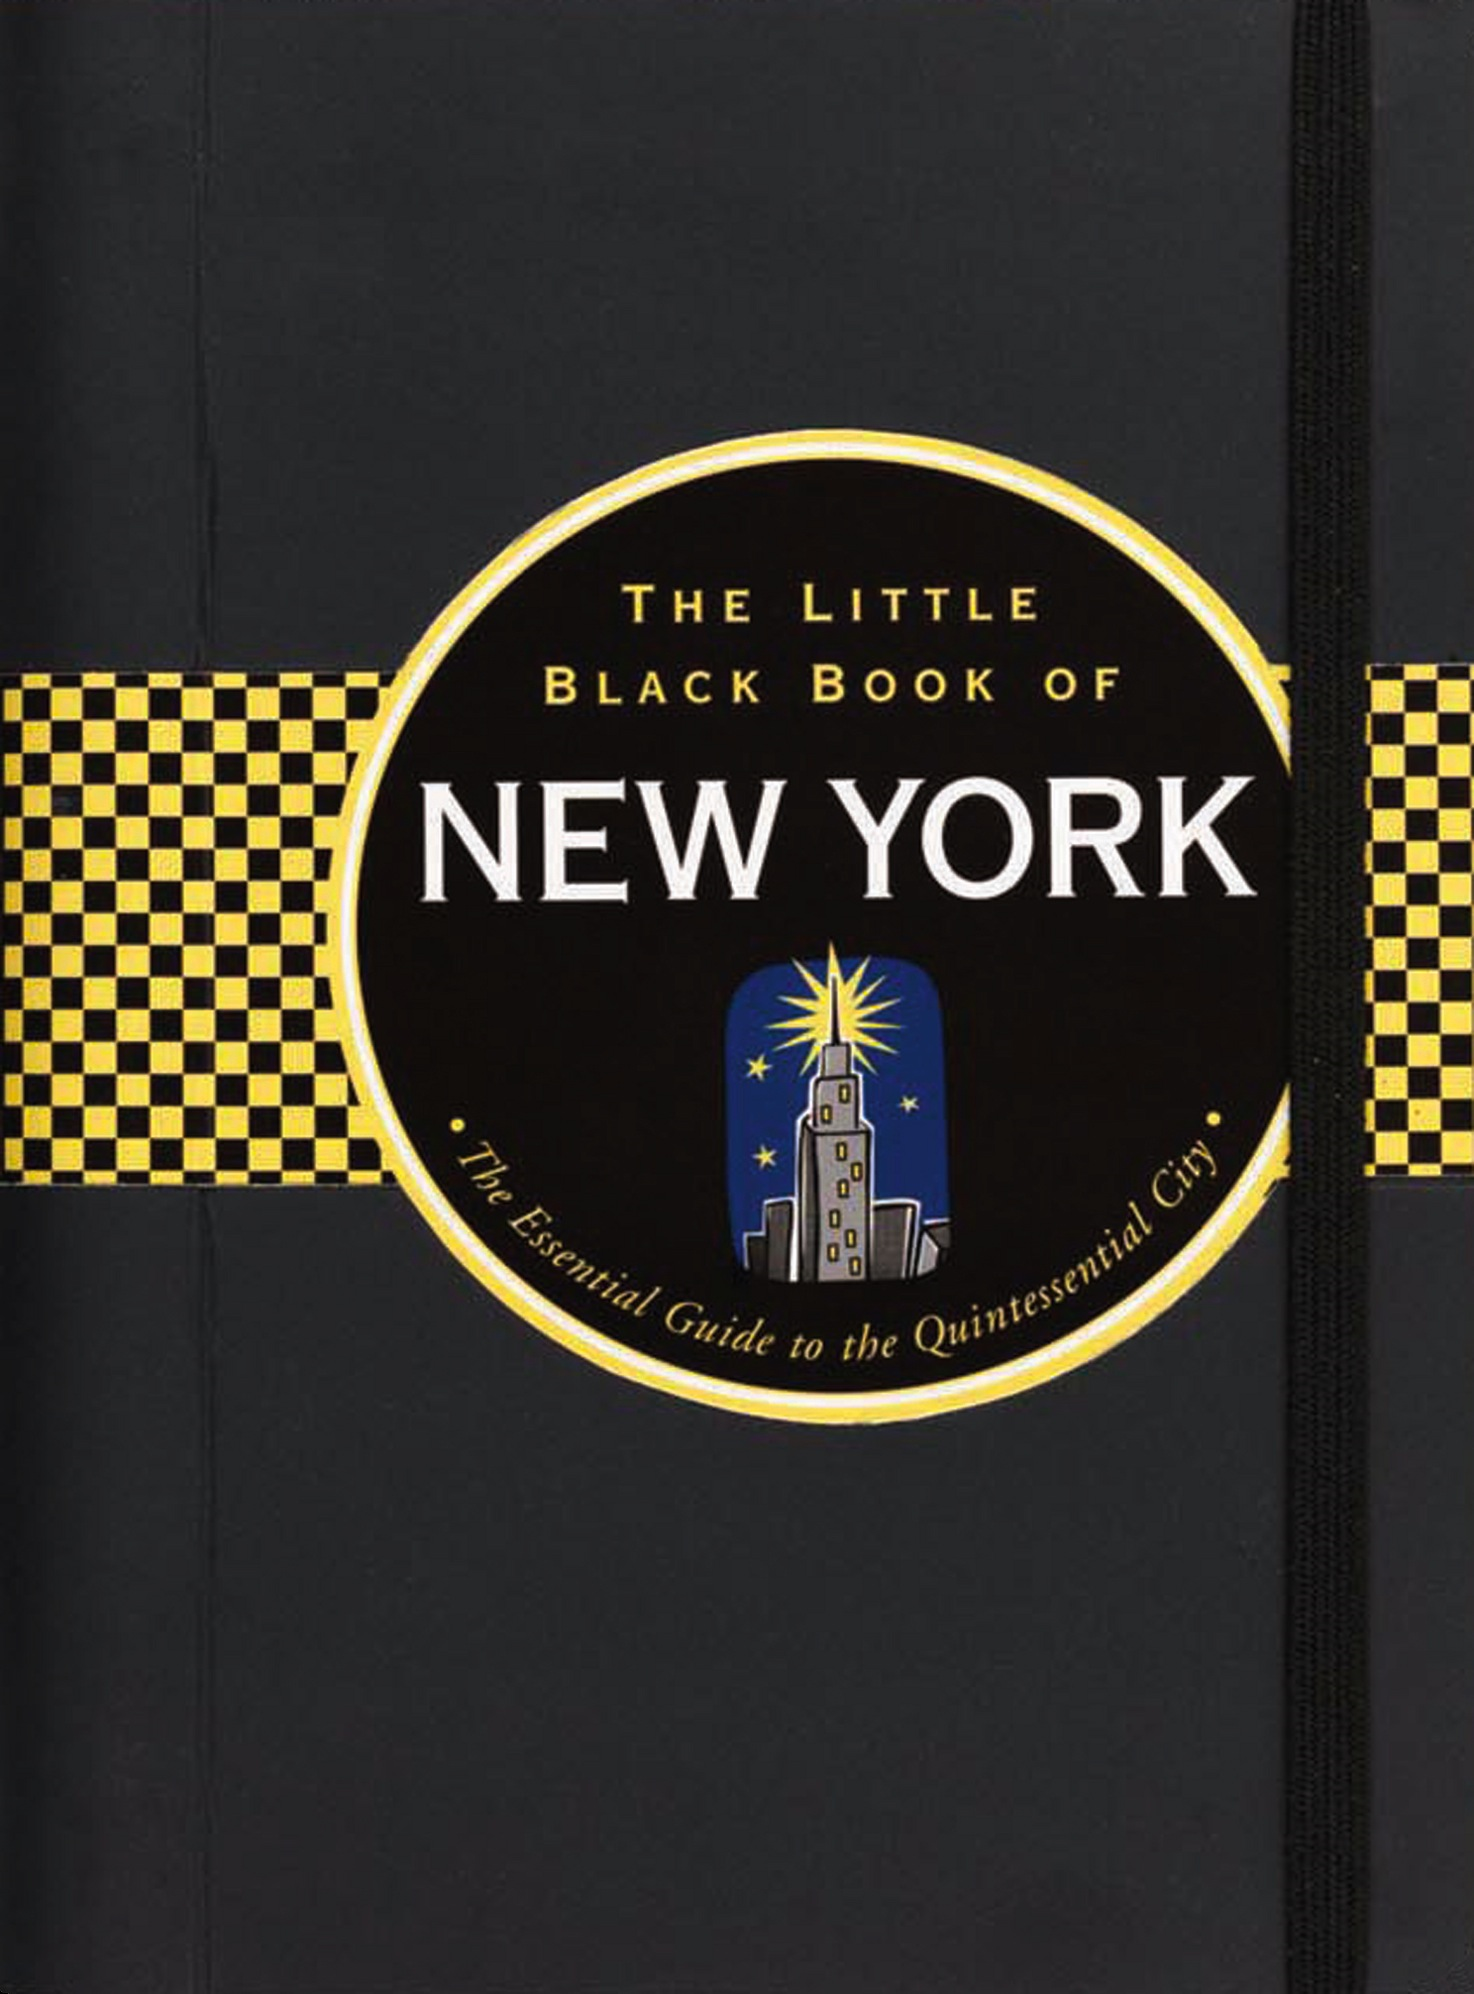 The Little Black Book of New York, 2013 edition By: Ben Gibberd